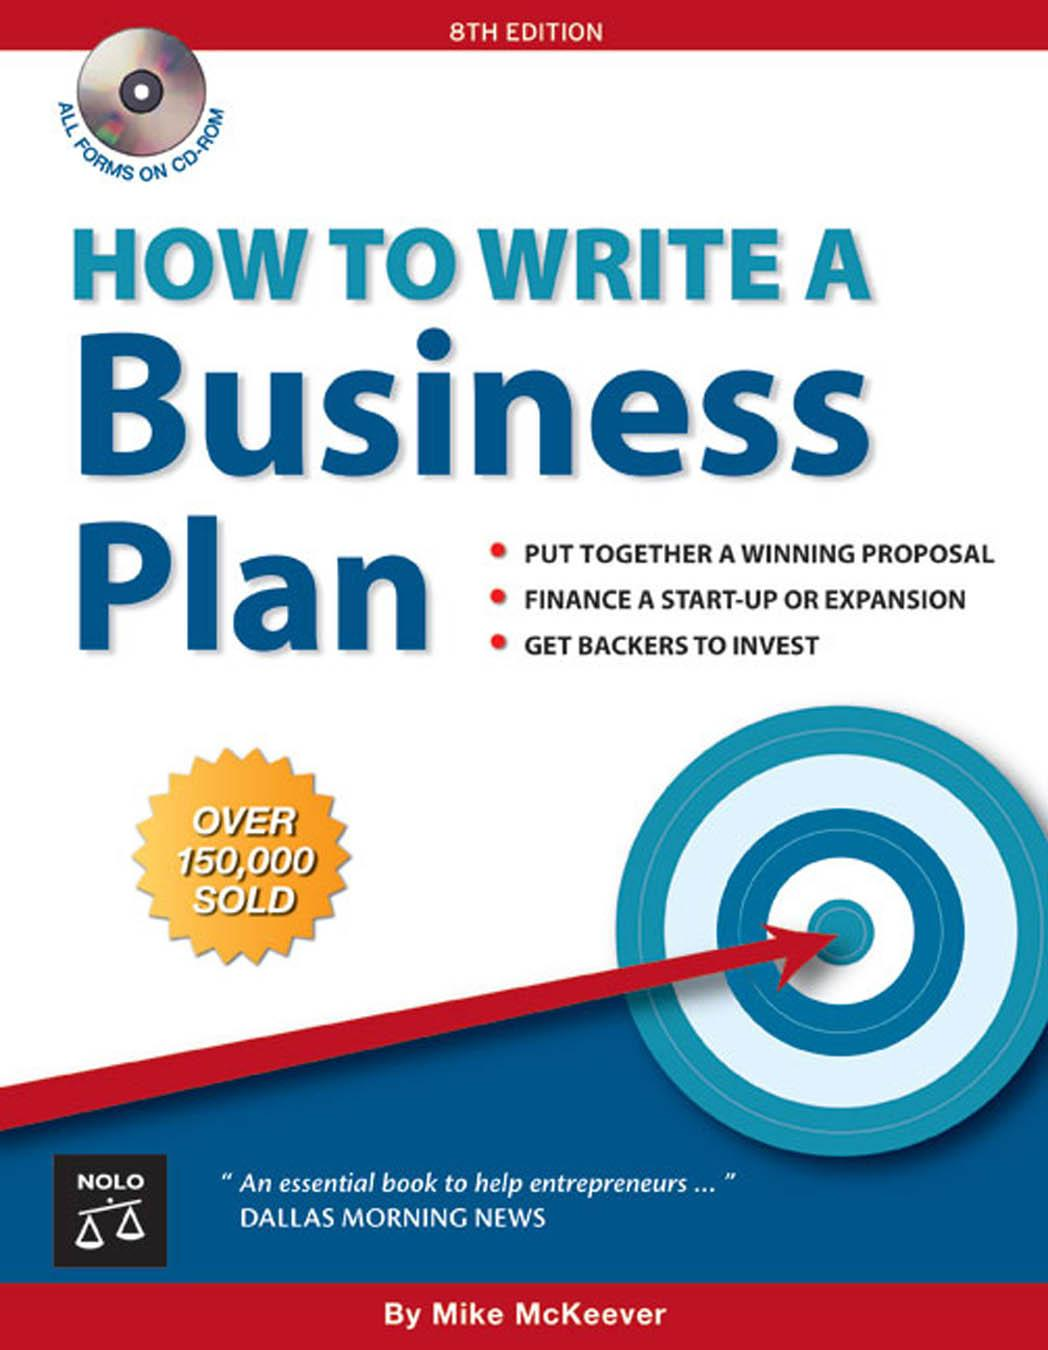 Business Plan for Writers | New York Media Works